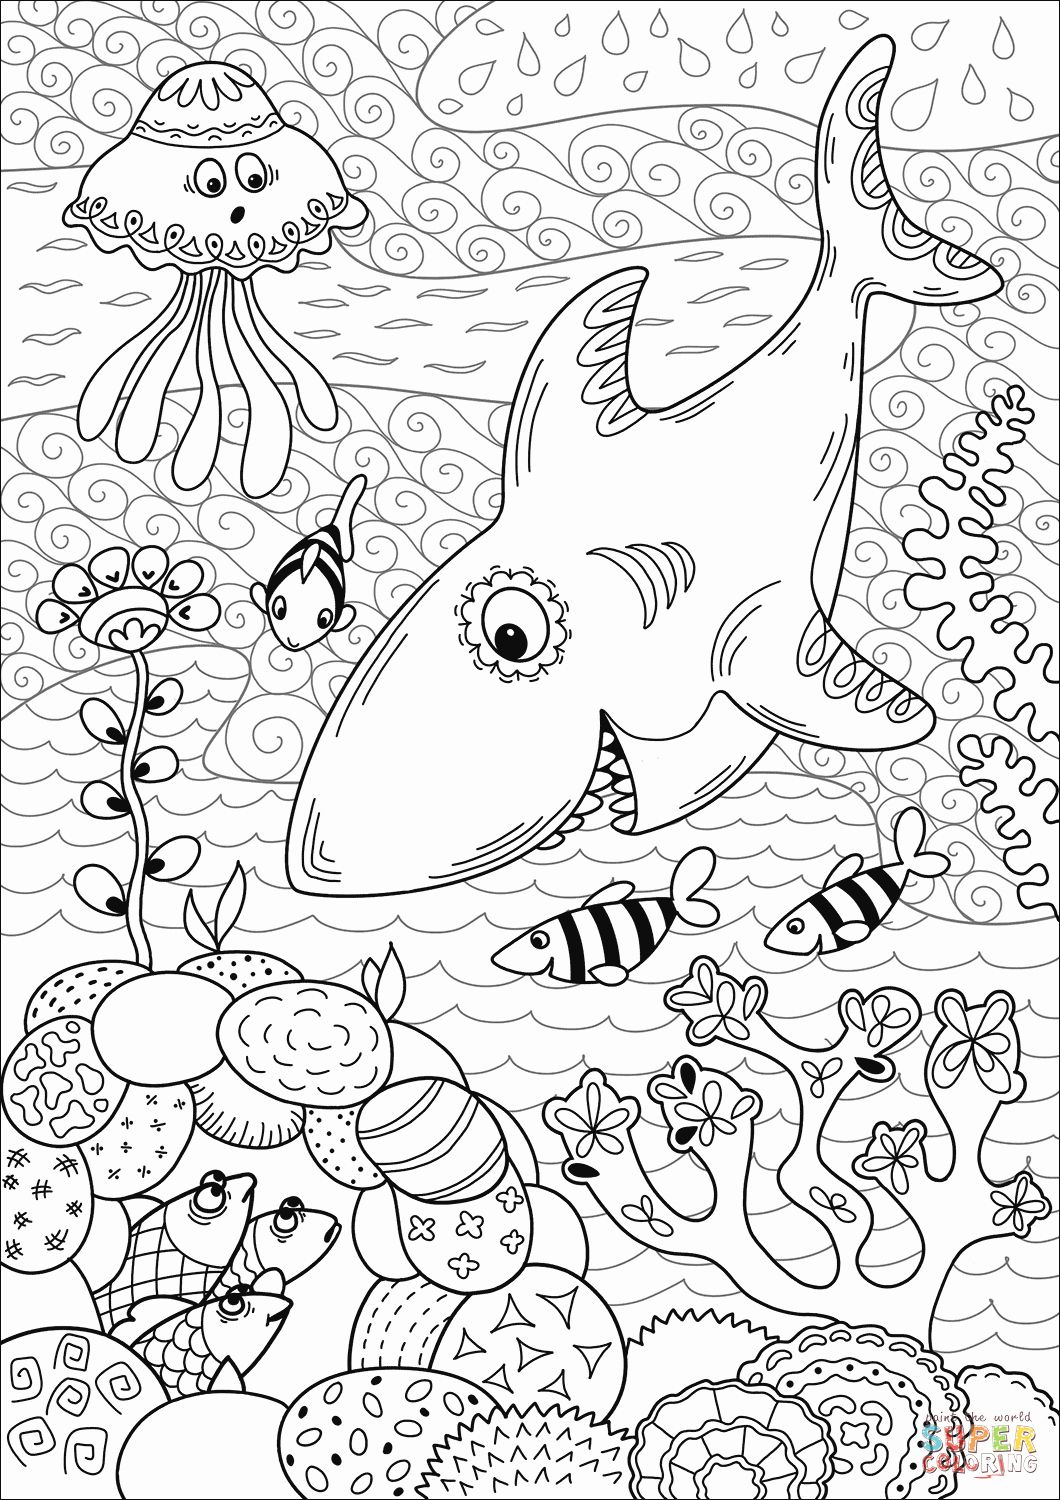 Pictures Of Sharks For Kids To Color In Shark Coloring Pages